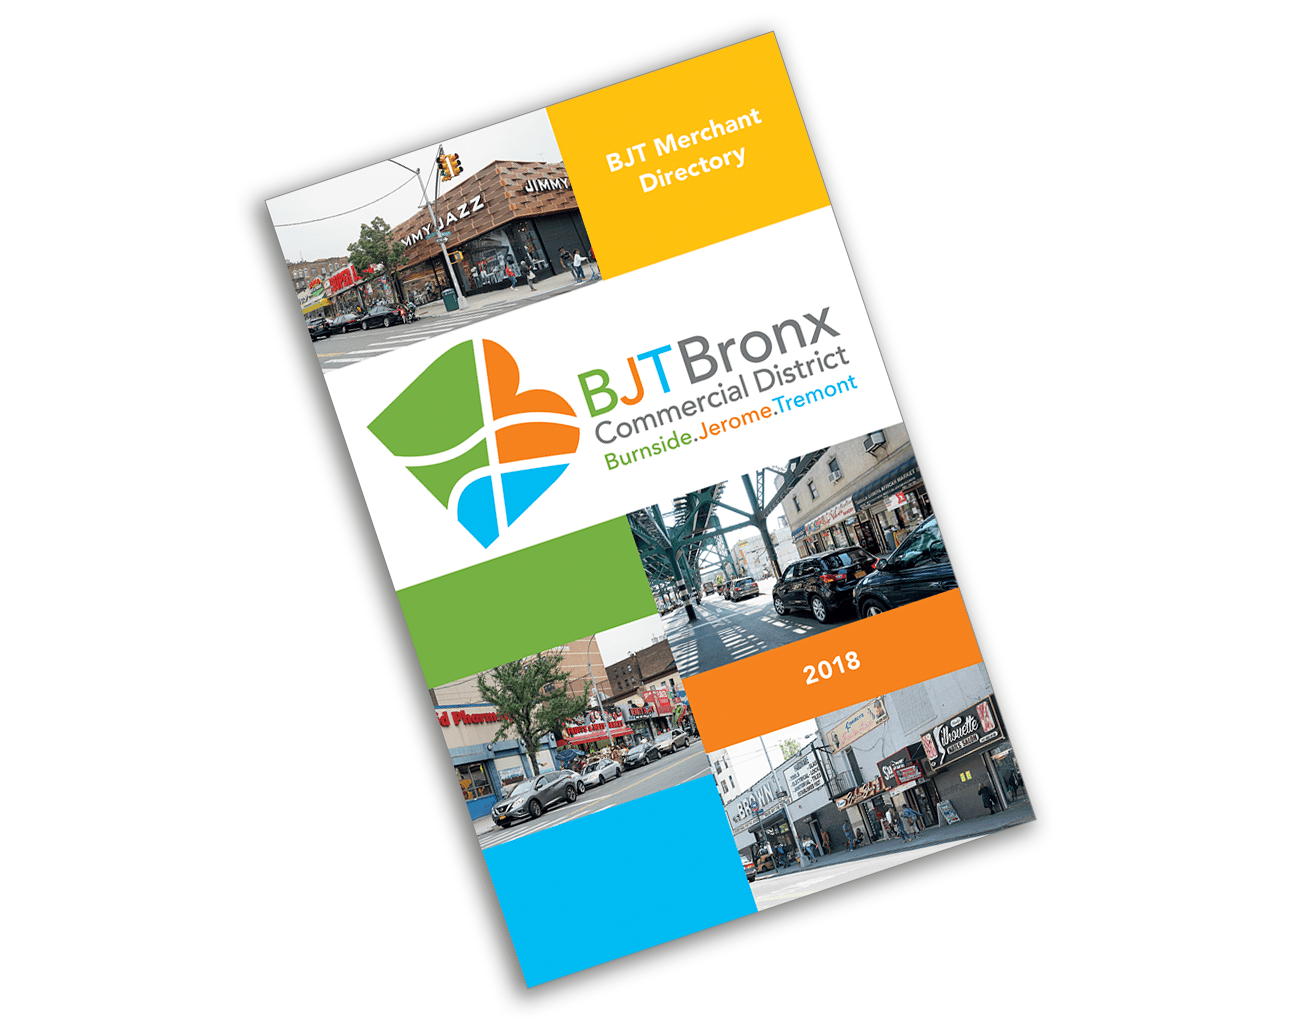 Click to open a PDF of the BJTBronx Merchant Directory 2018